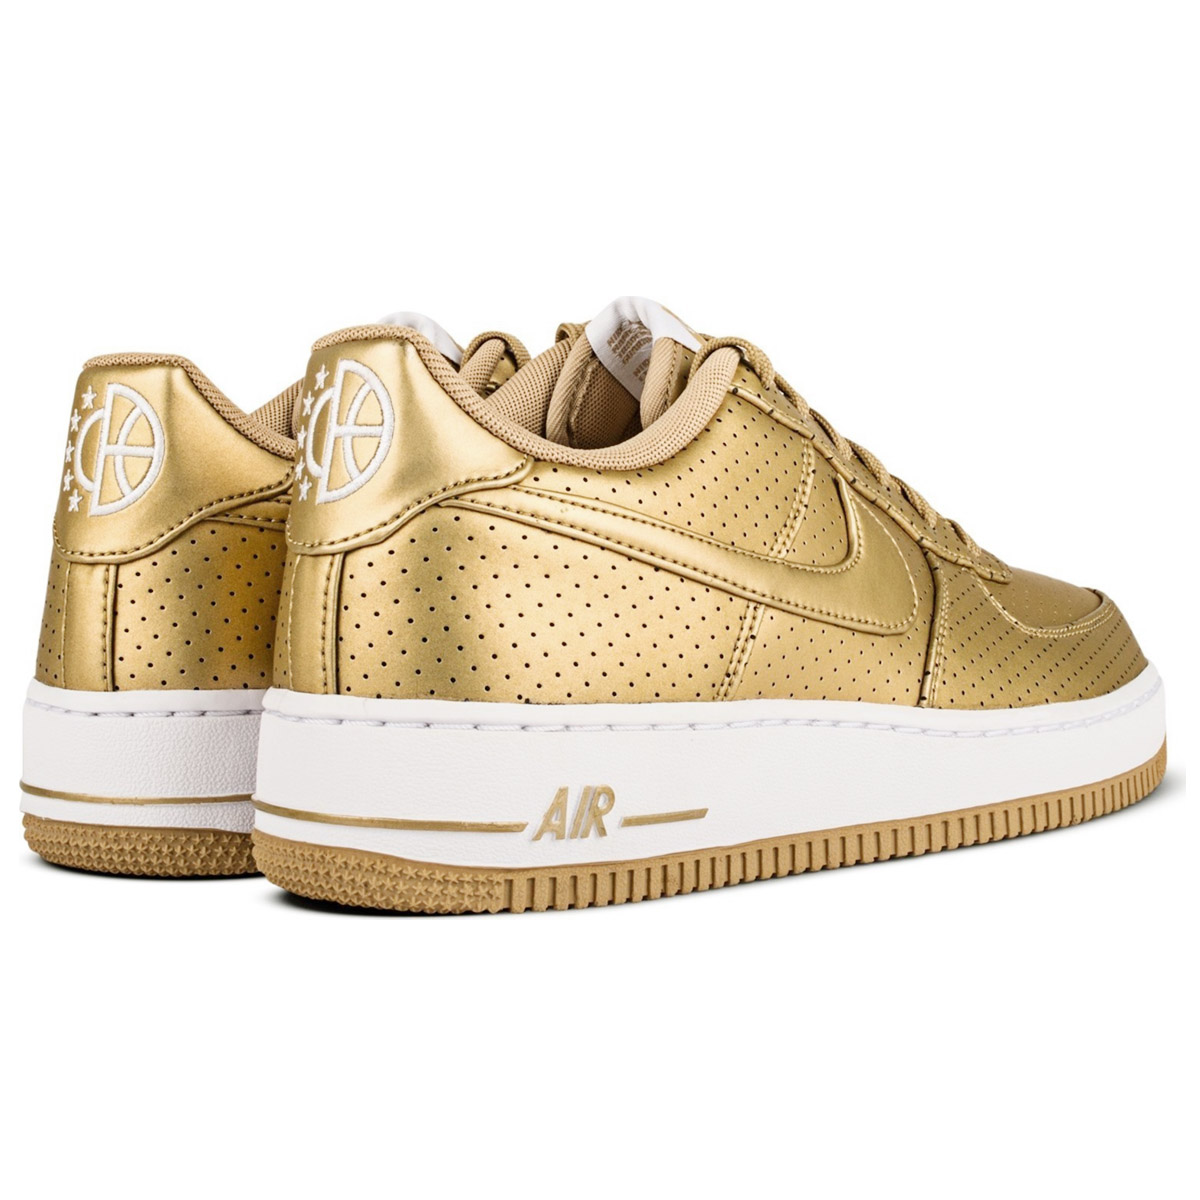 Nike Women Air Force 1 One LV8 GOLD EDITION Shoes Women's ...